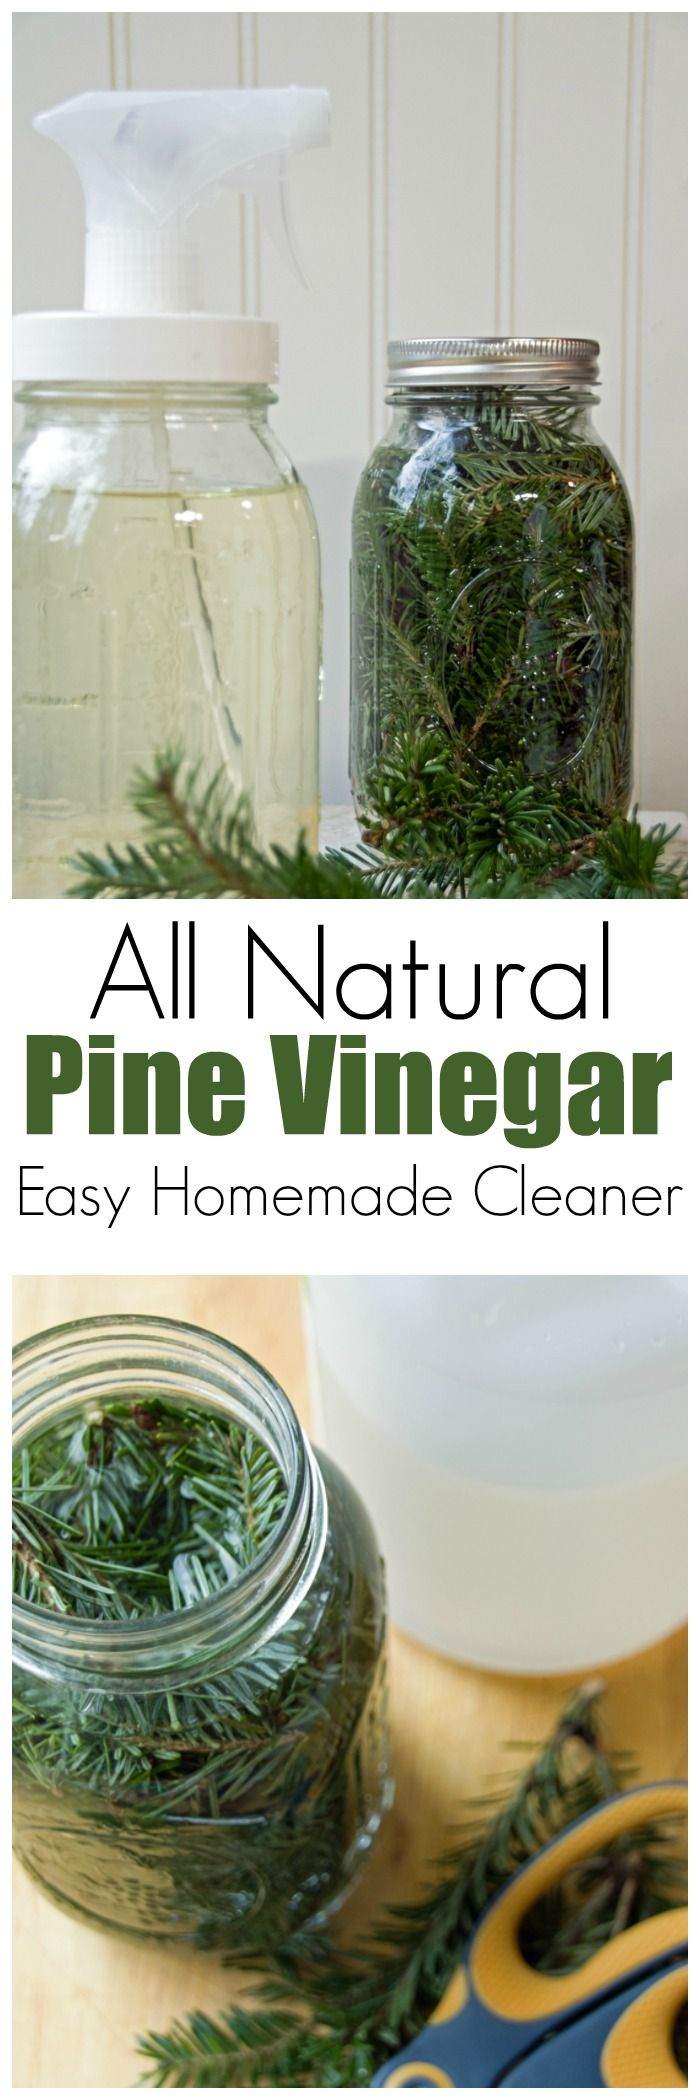 Pine Vinegar Homemade Kitchen Cleaner | Vinegar, Pine and Homemade ...